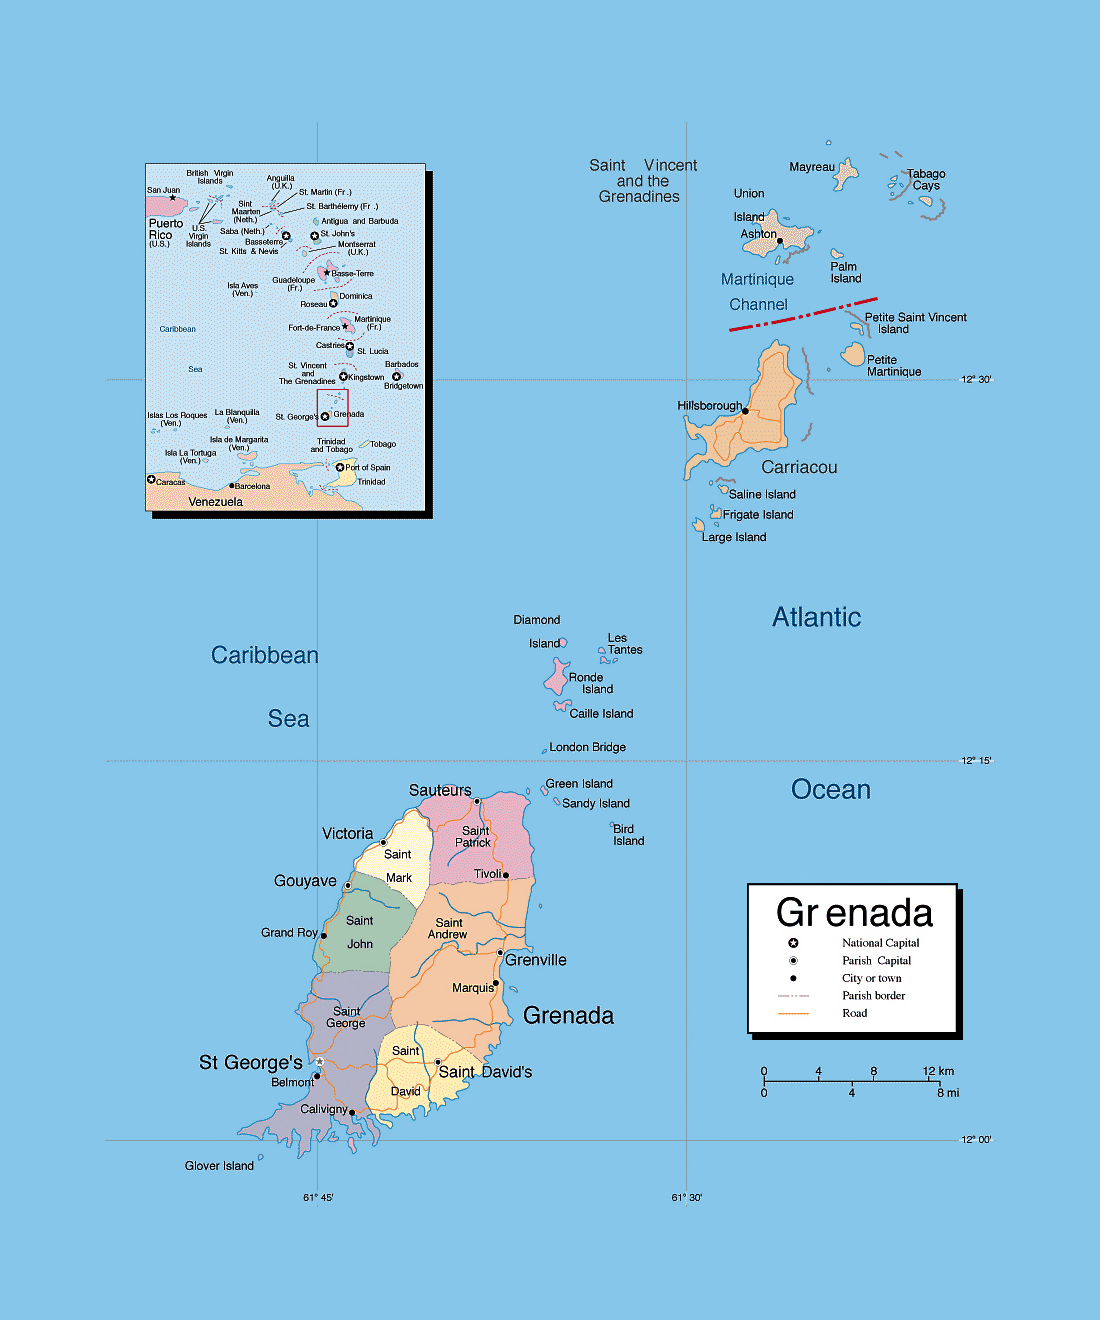 Detailed political and administrative map of Grenada with roads and